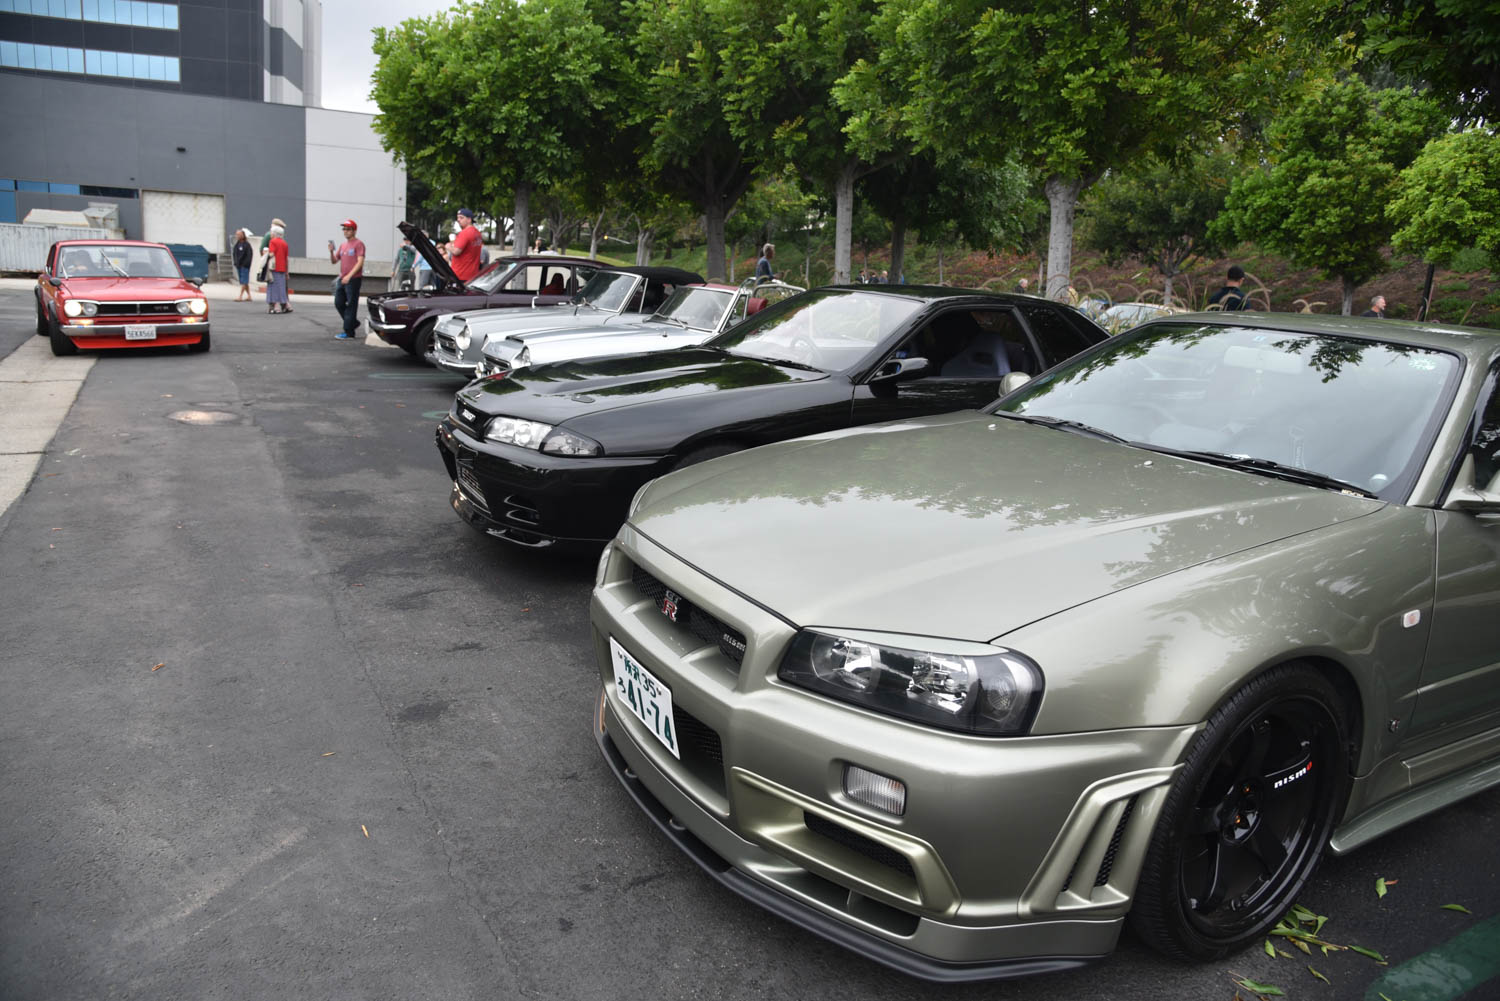 Irvine Cars and Coffee reunion